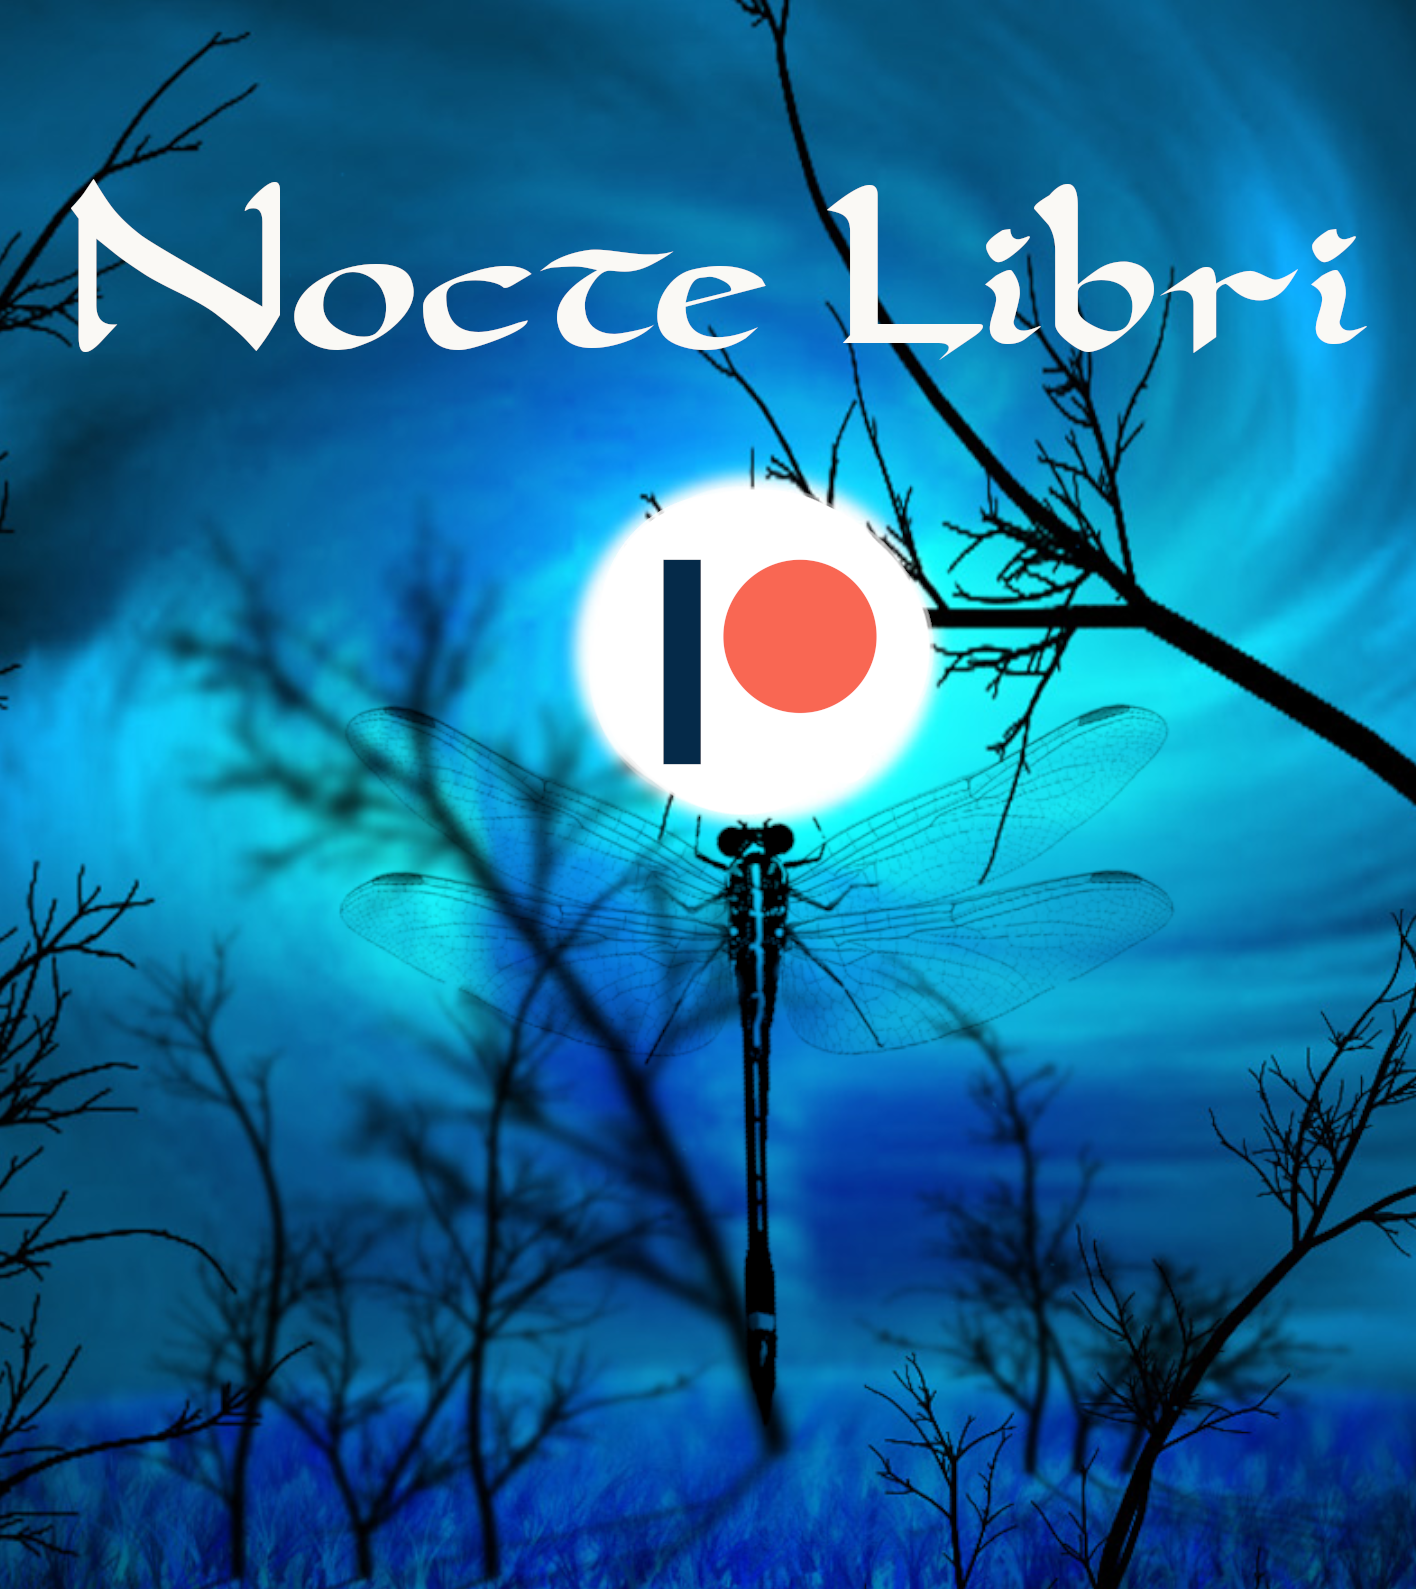 The Nocte Libri Patreon Project